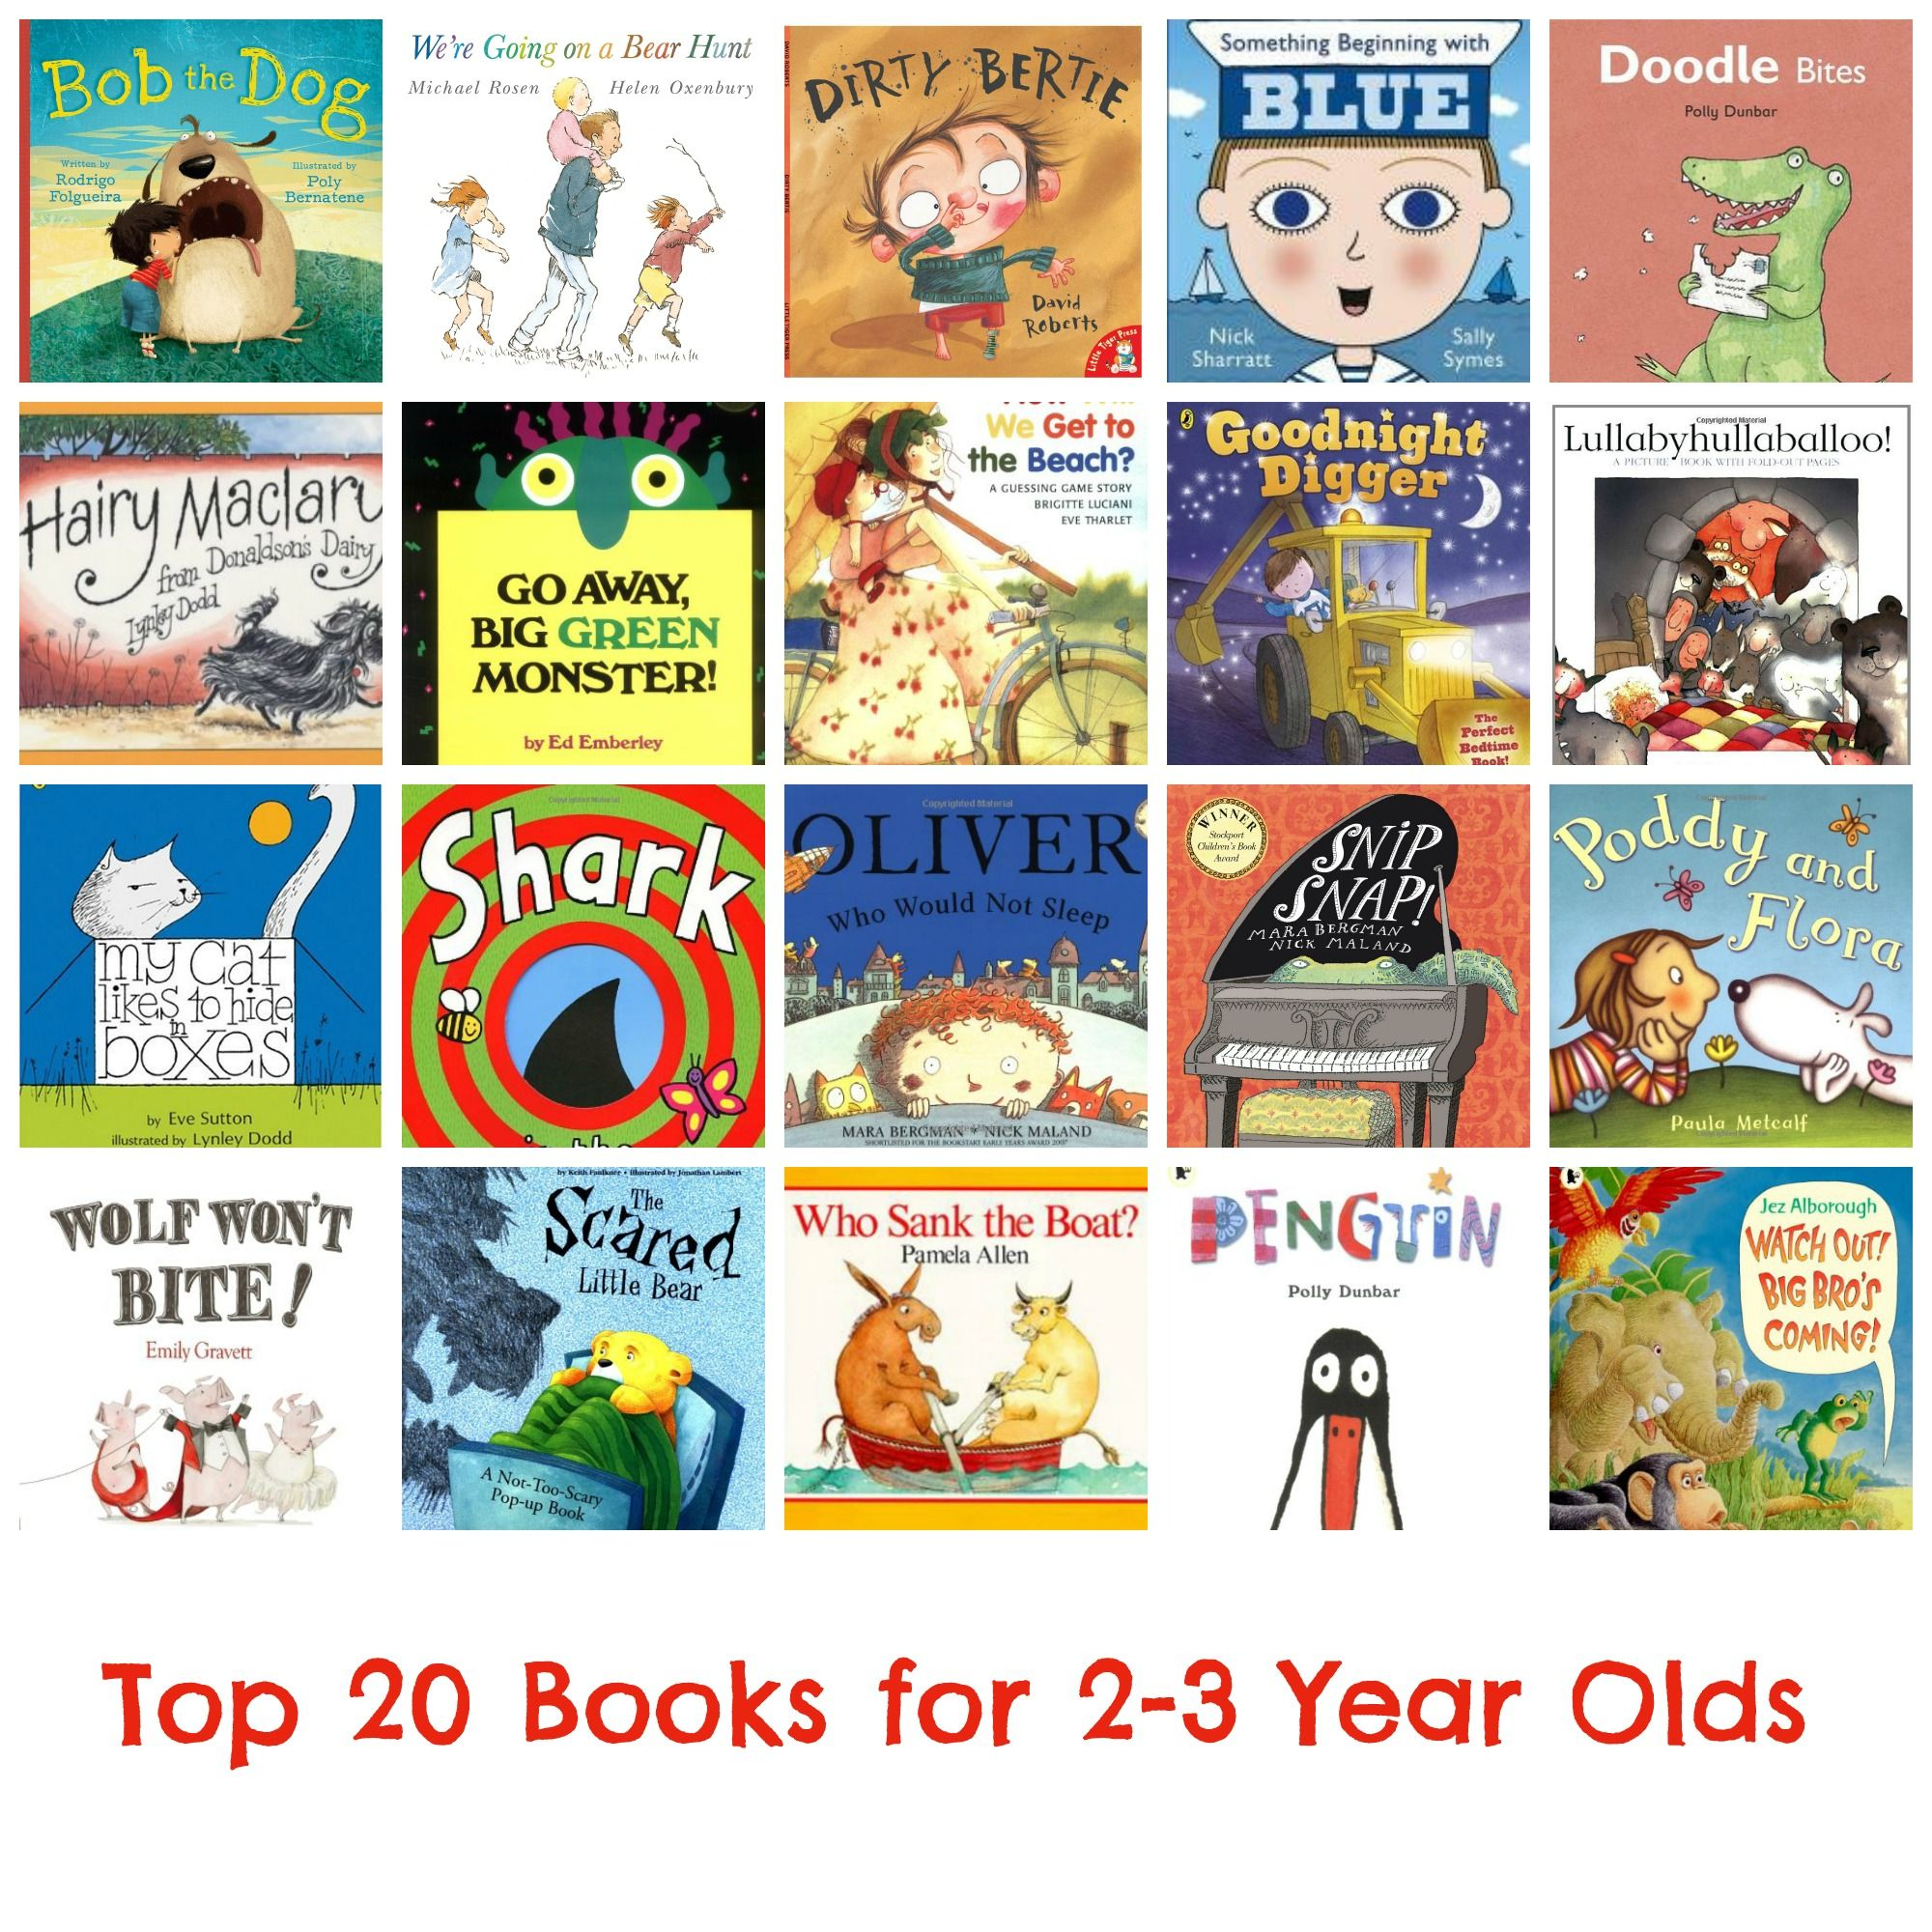 13 Best Read Aloud Books for Toddlers